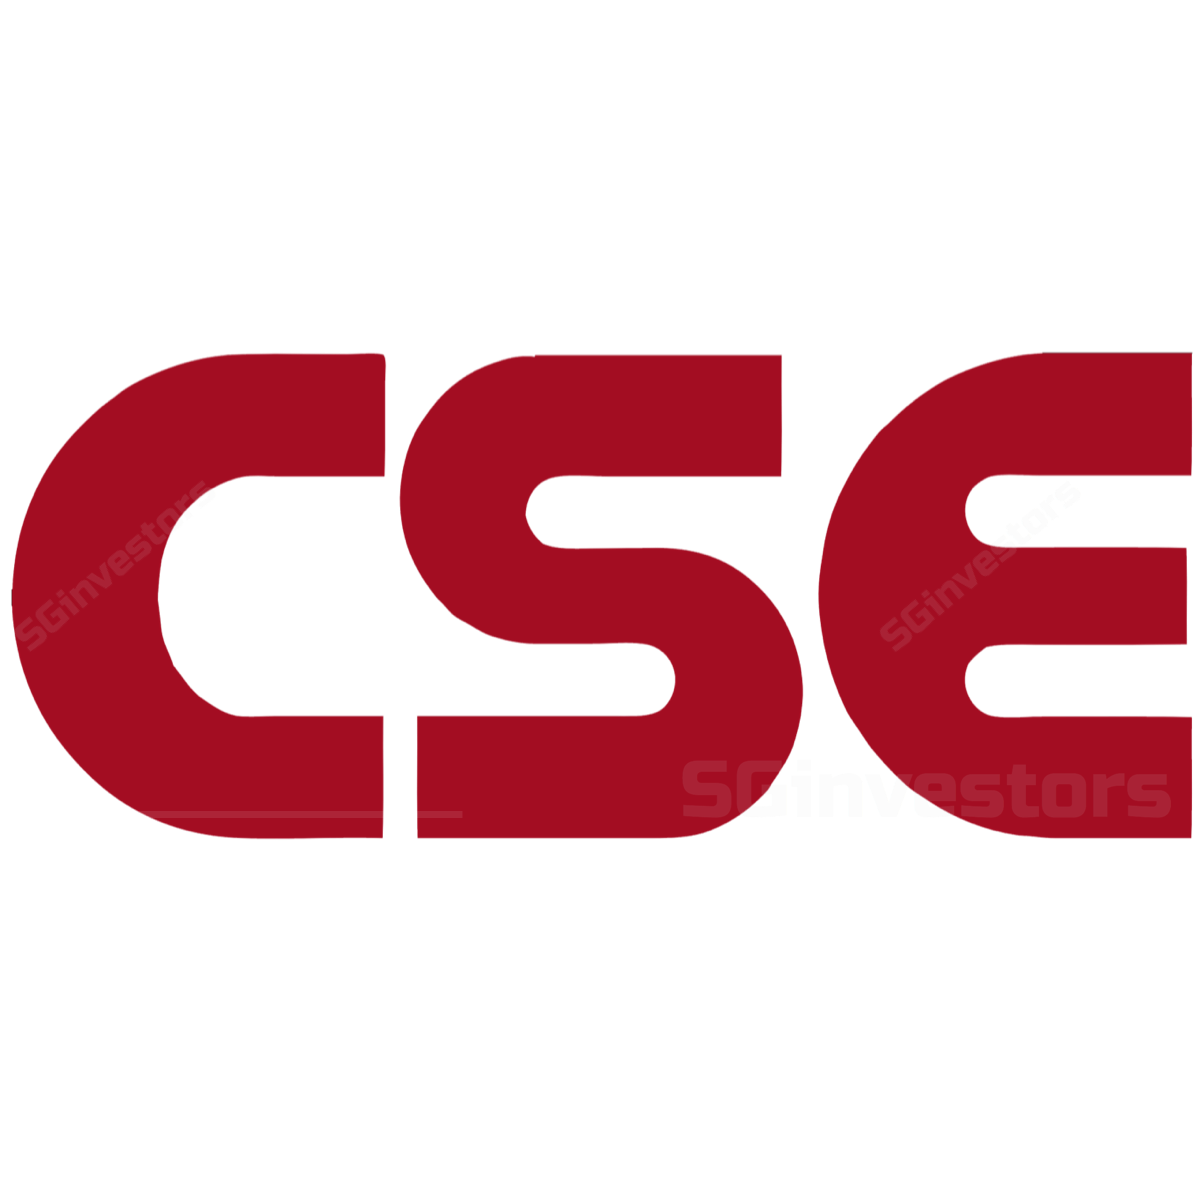 CSE Global - CIMB Research 2016-12-05: Flight-to-safety stock with guaranteed dividends